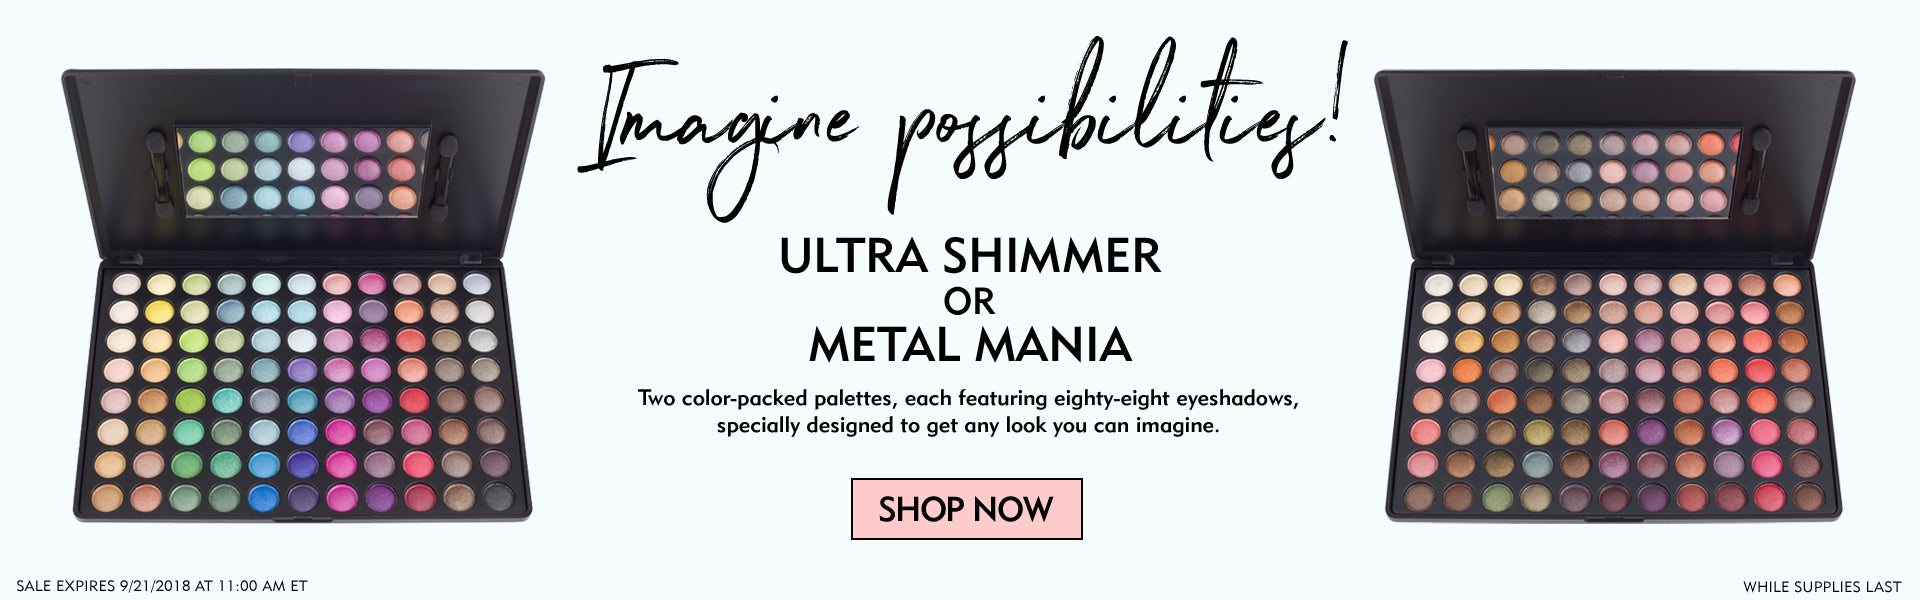 88 Metal Mania and 88 Ultra Shimmer Sale